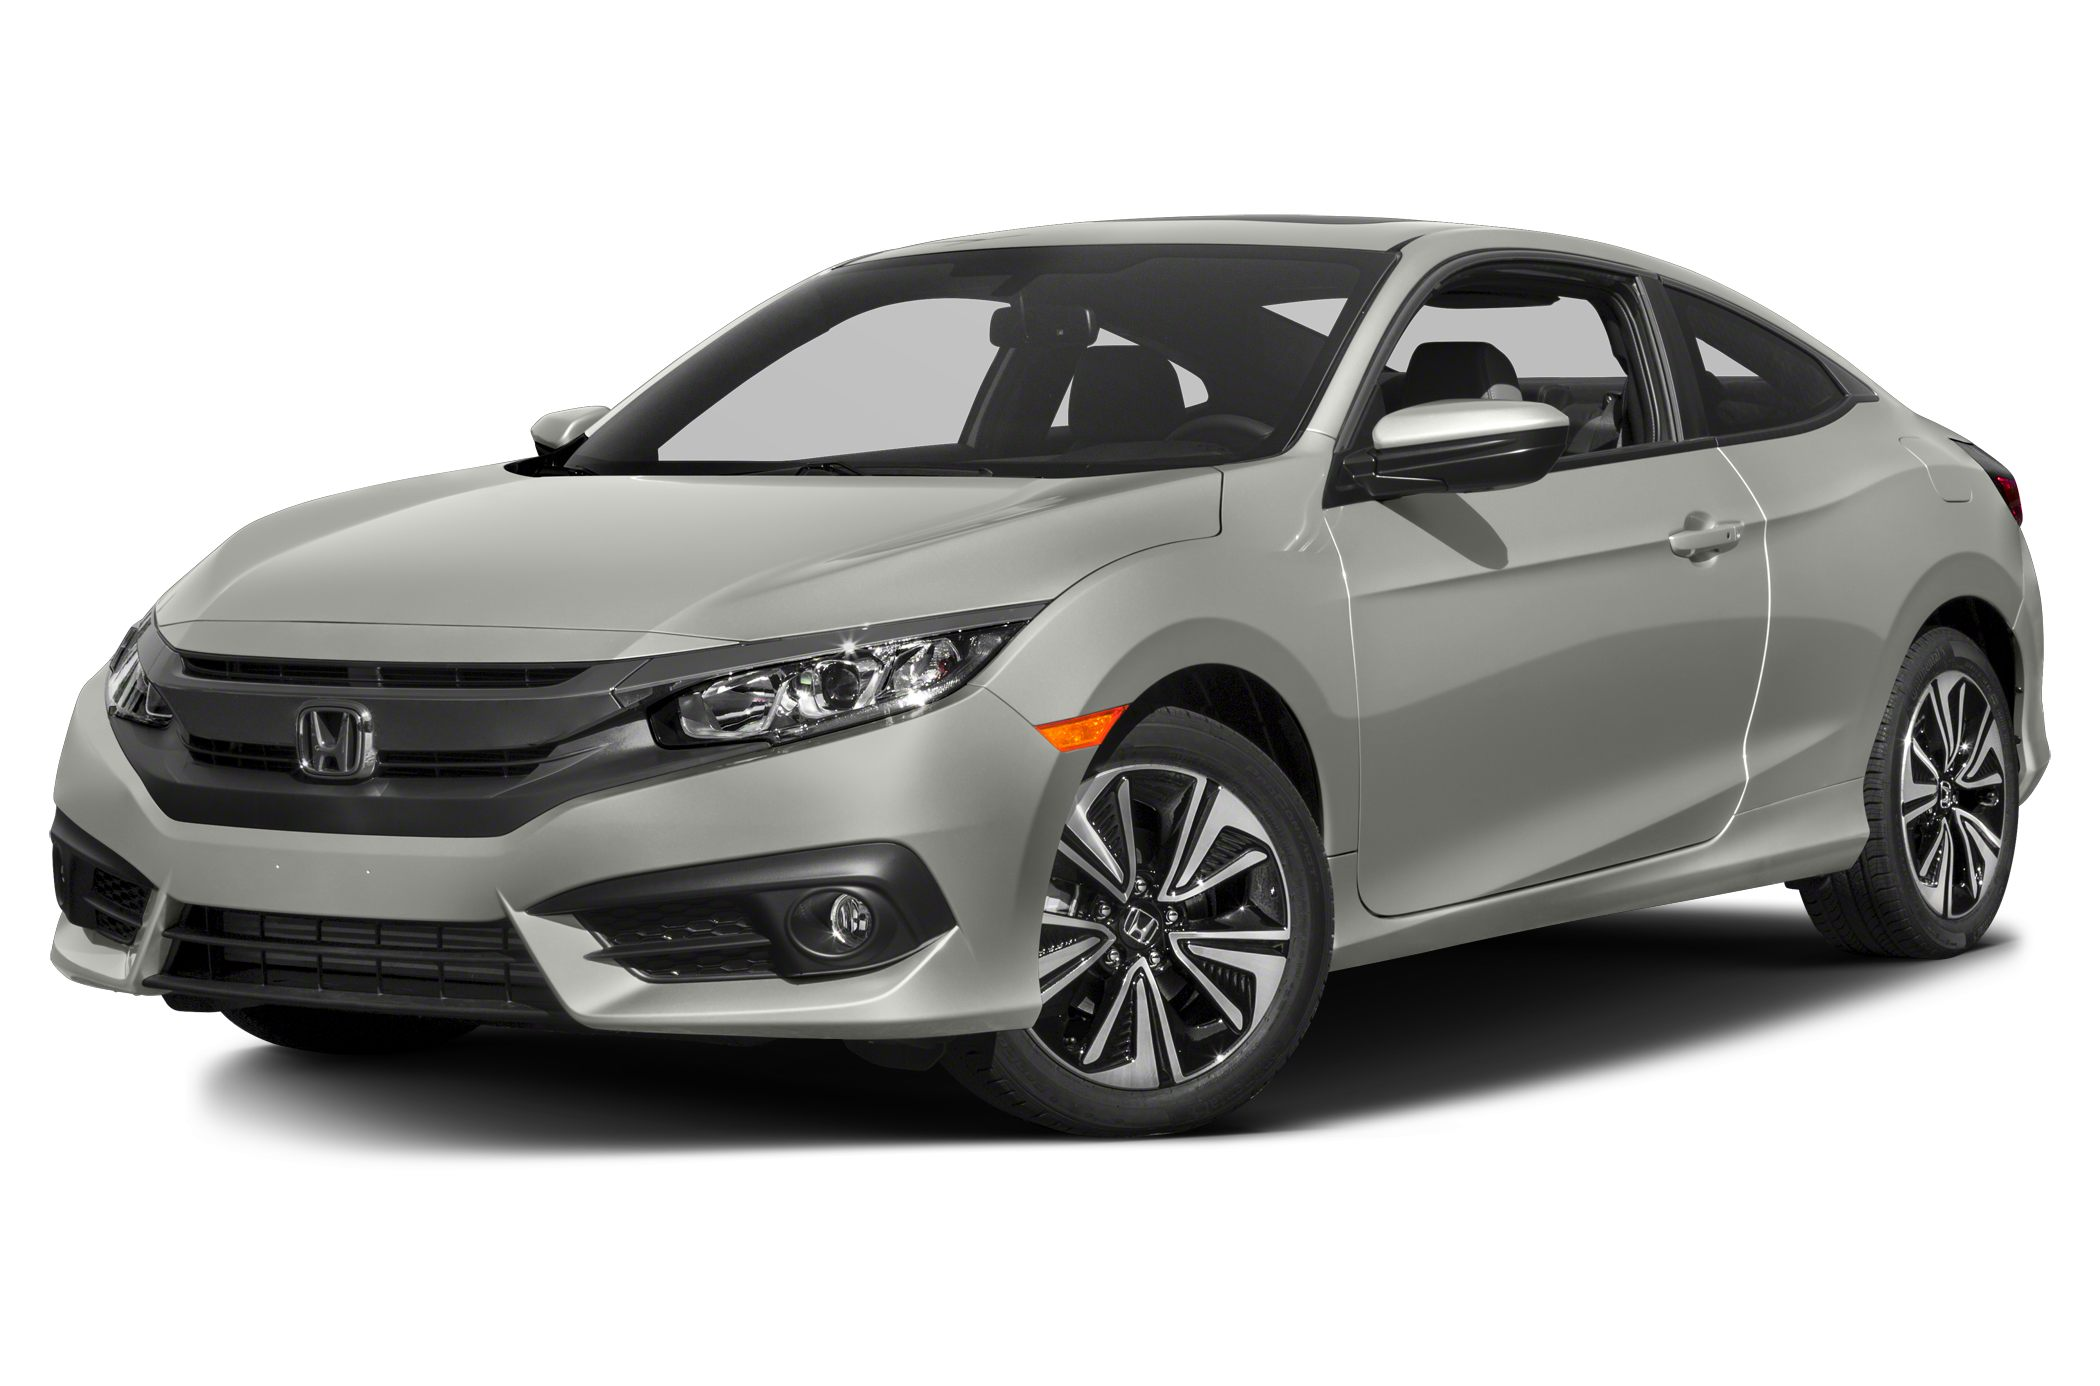 2016 Honda Civic EX-L Buy a new Honda from Diamond Valley Honda in Hemet and obtain Lifetime Oil C